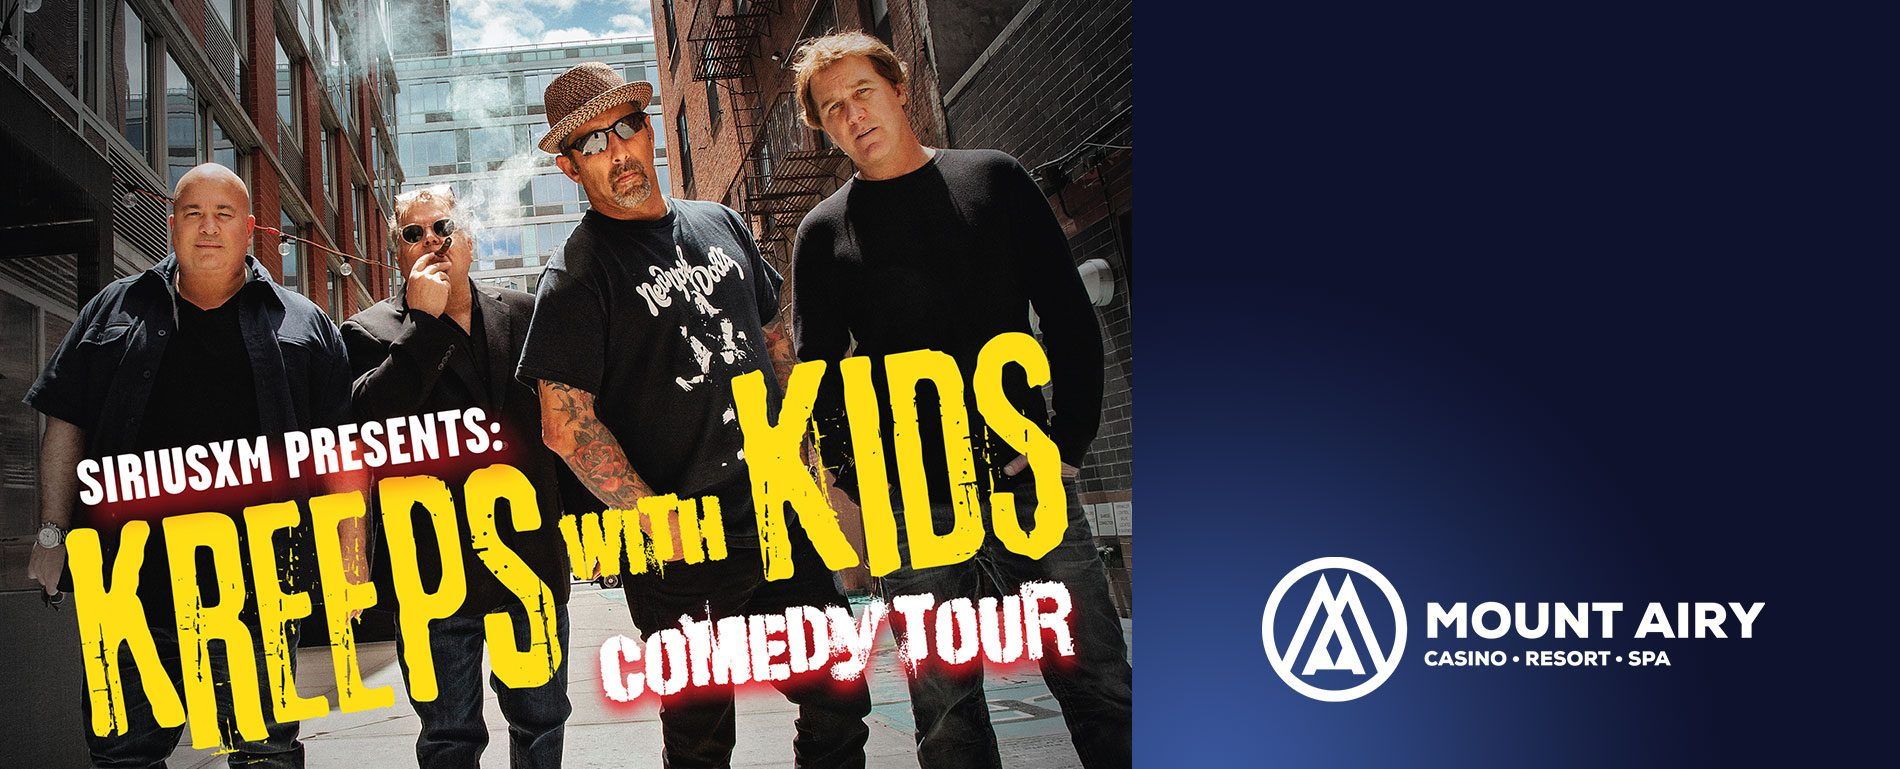 mt poconos entertainment | Kreeps with Kids Comedy Tour